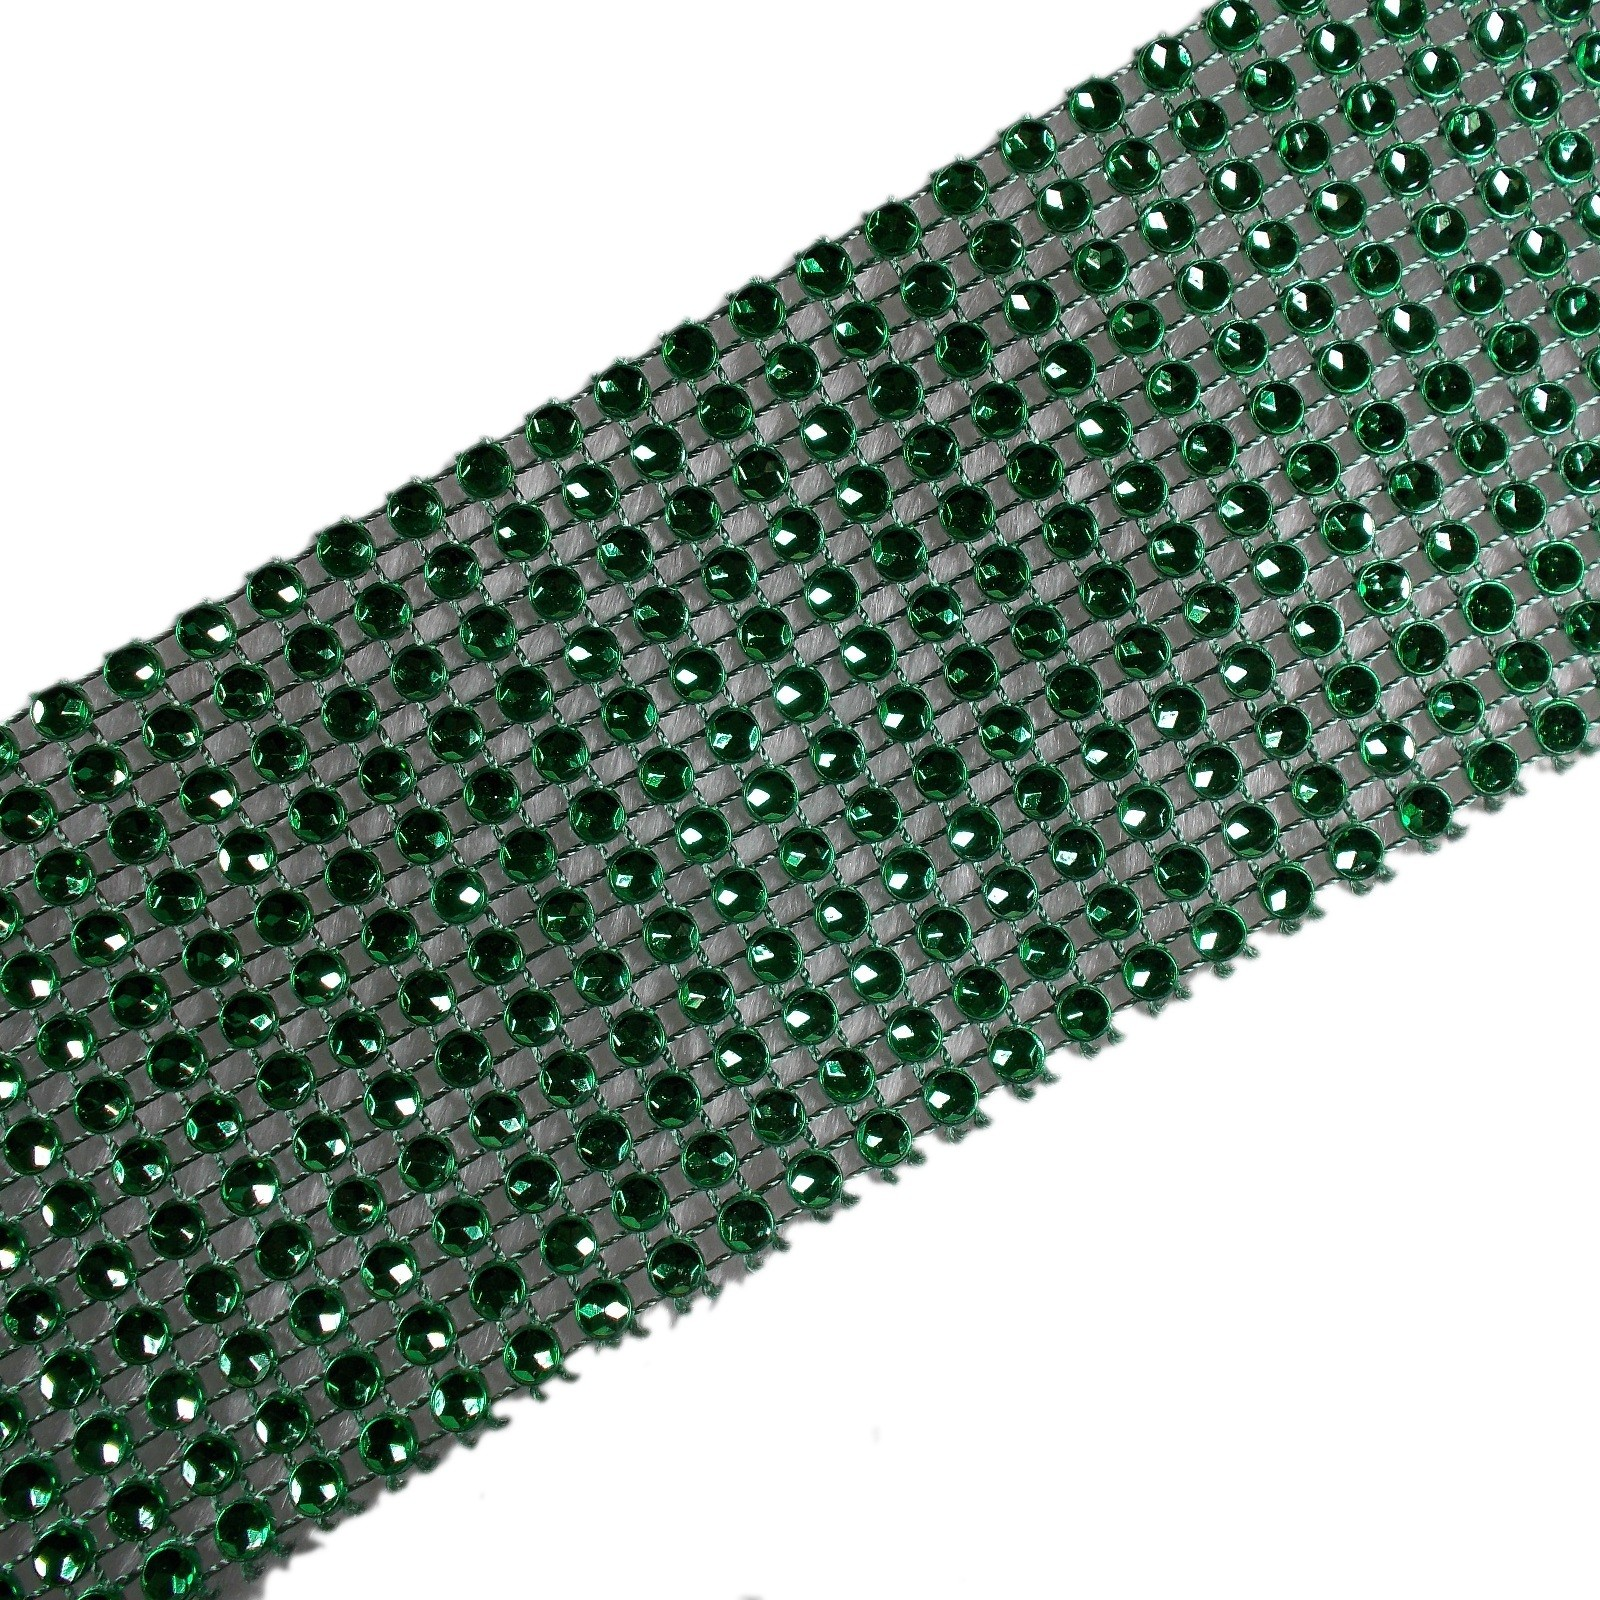 12 Row Diamante Trim 6cm Wide Green 1 metre length